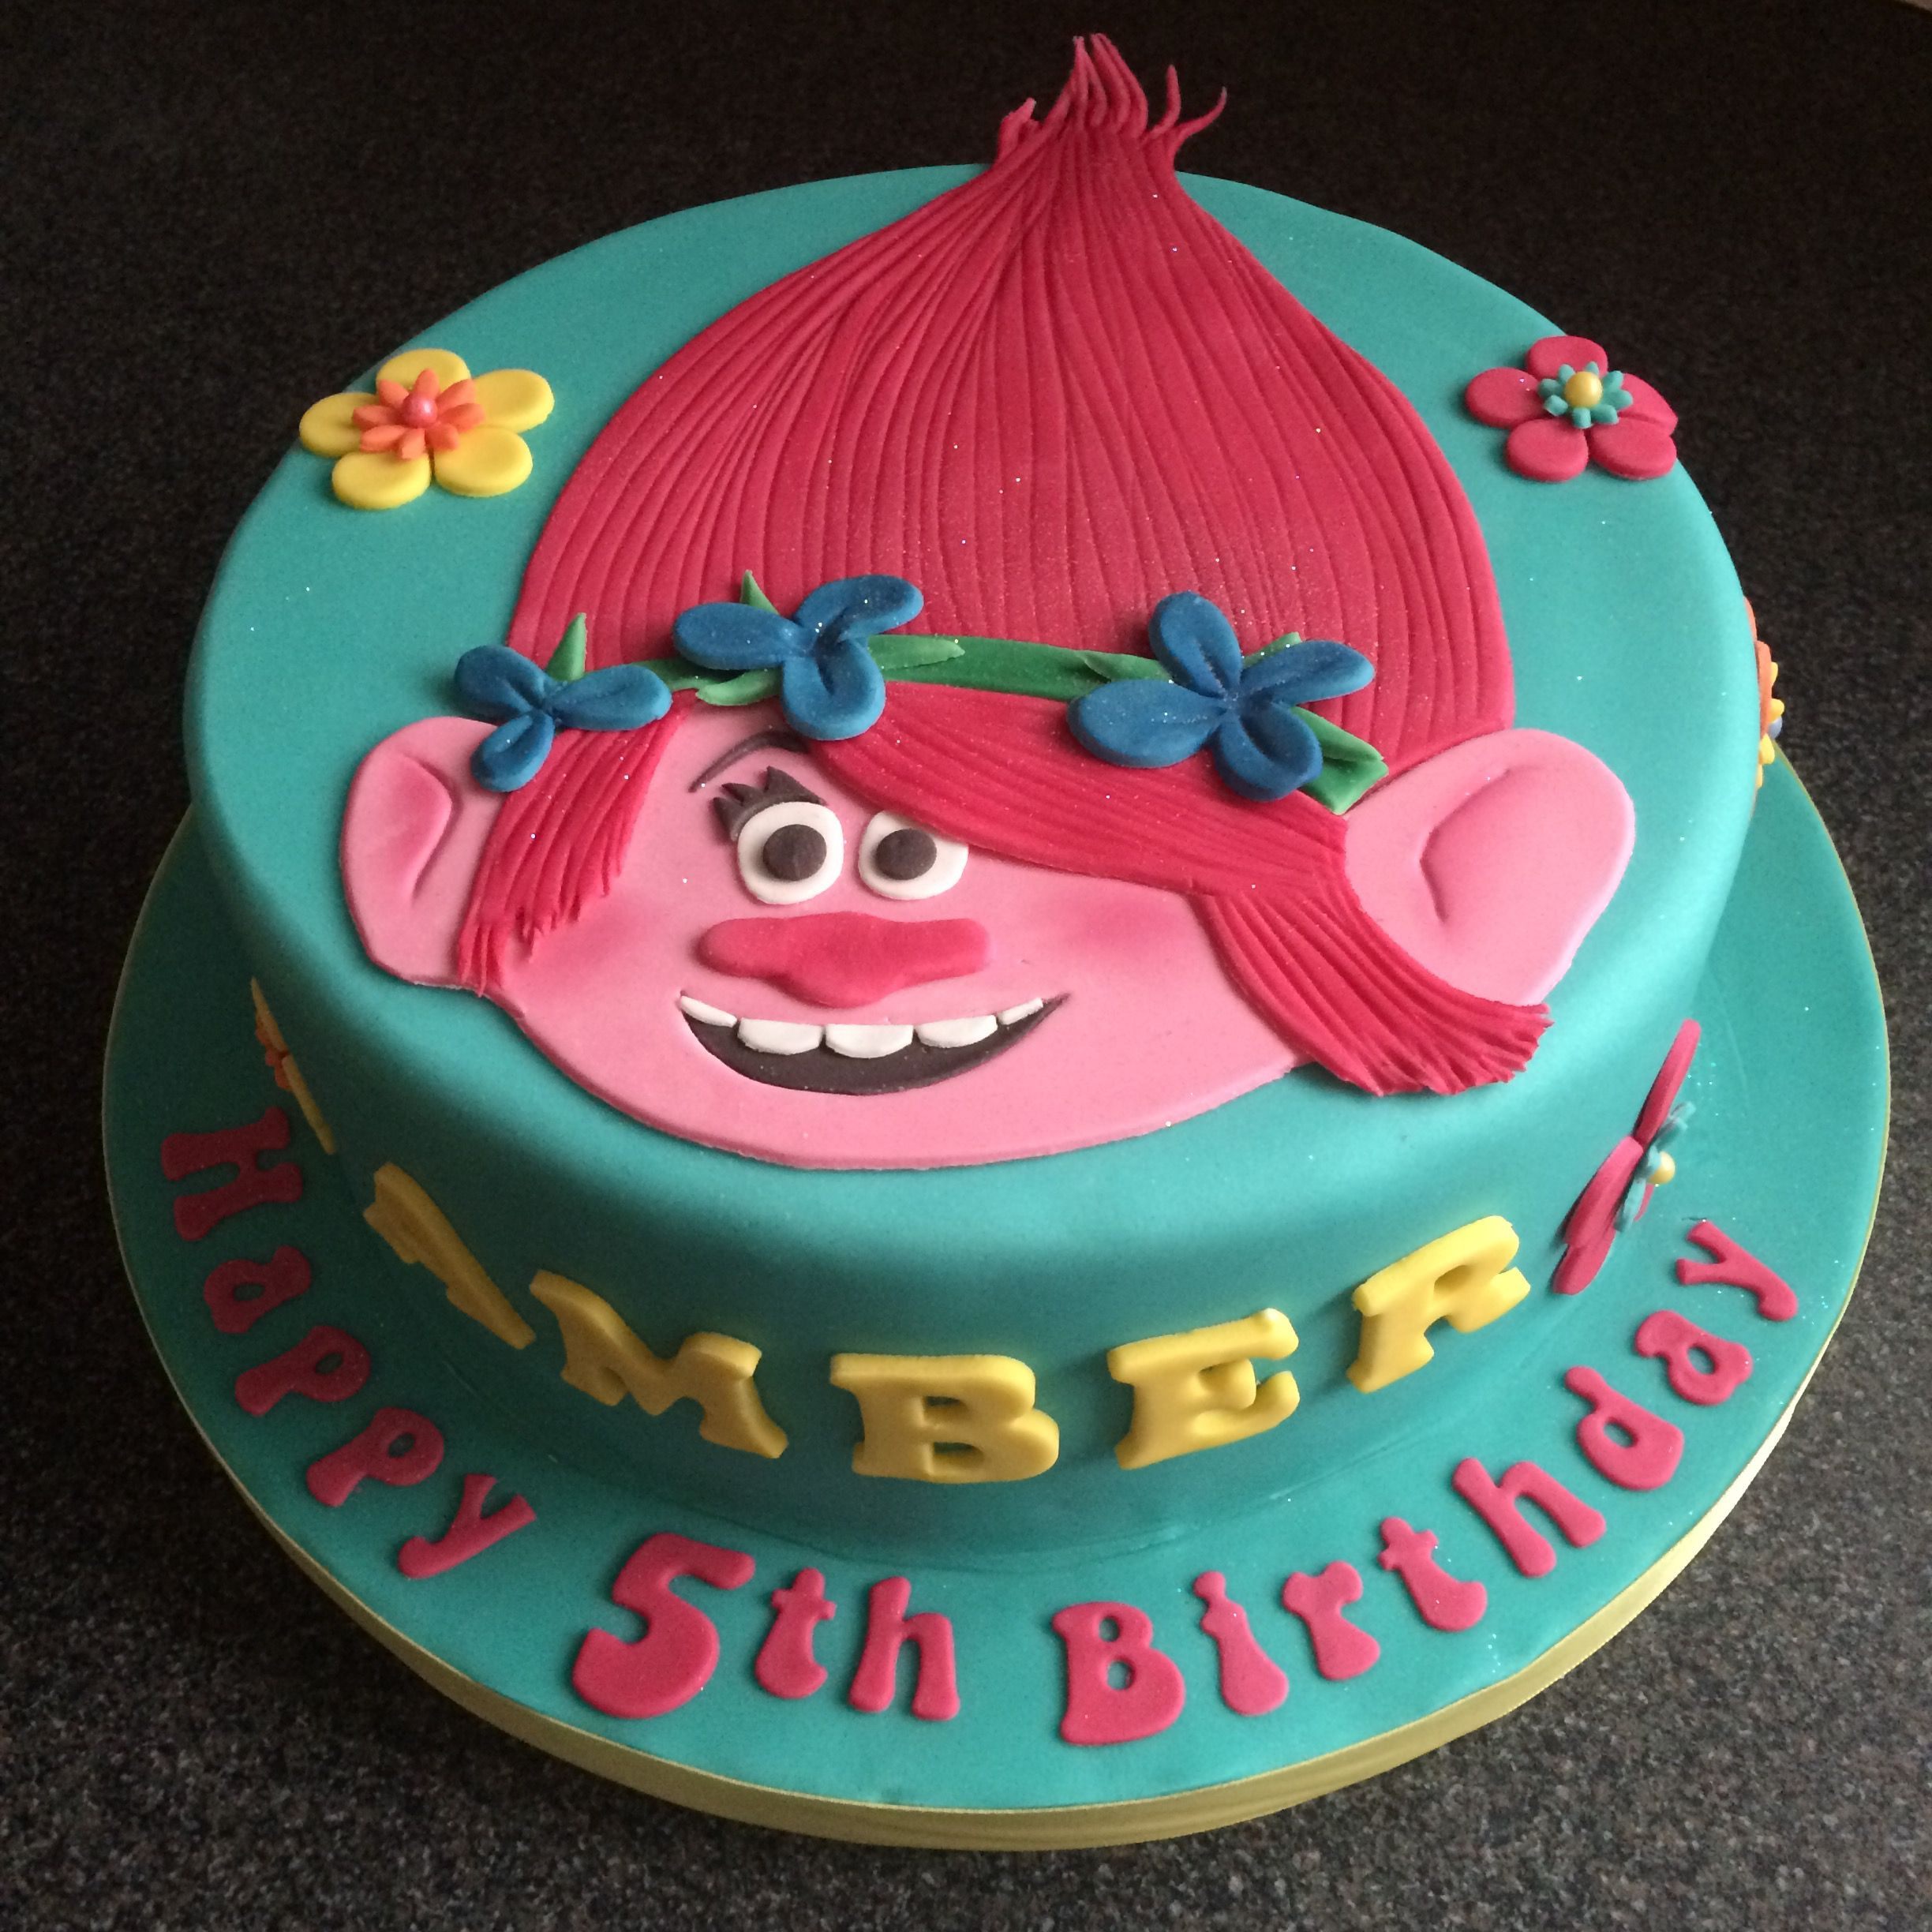 Best ideas about Poppy Troll Birthday Cake . Save or Pin Trolls cake Poppy Sweet shoppe Pinterest Now.